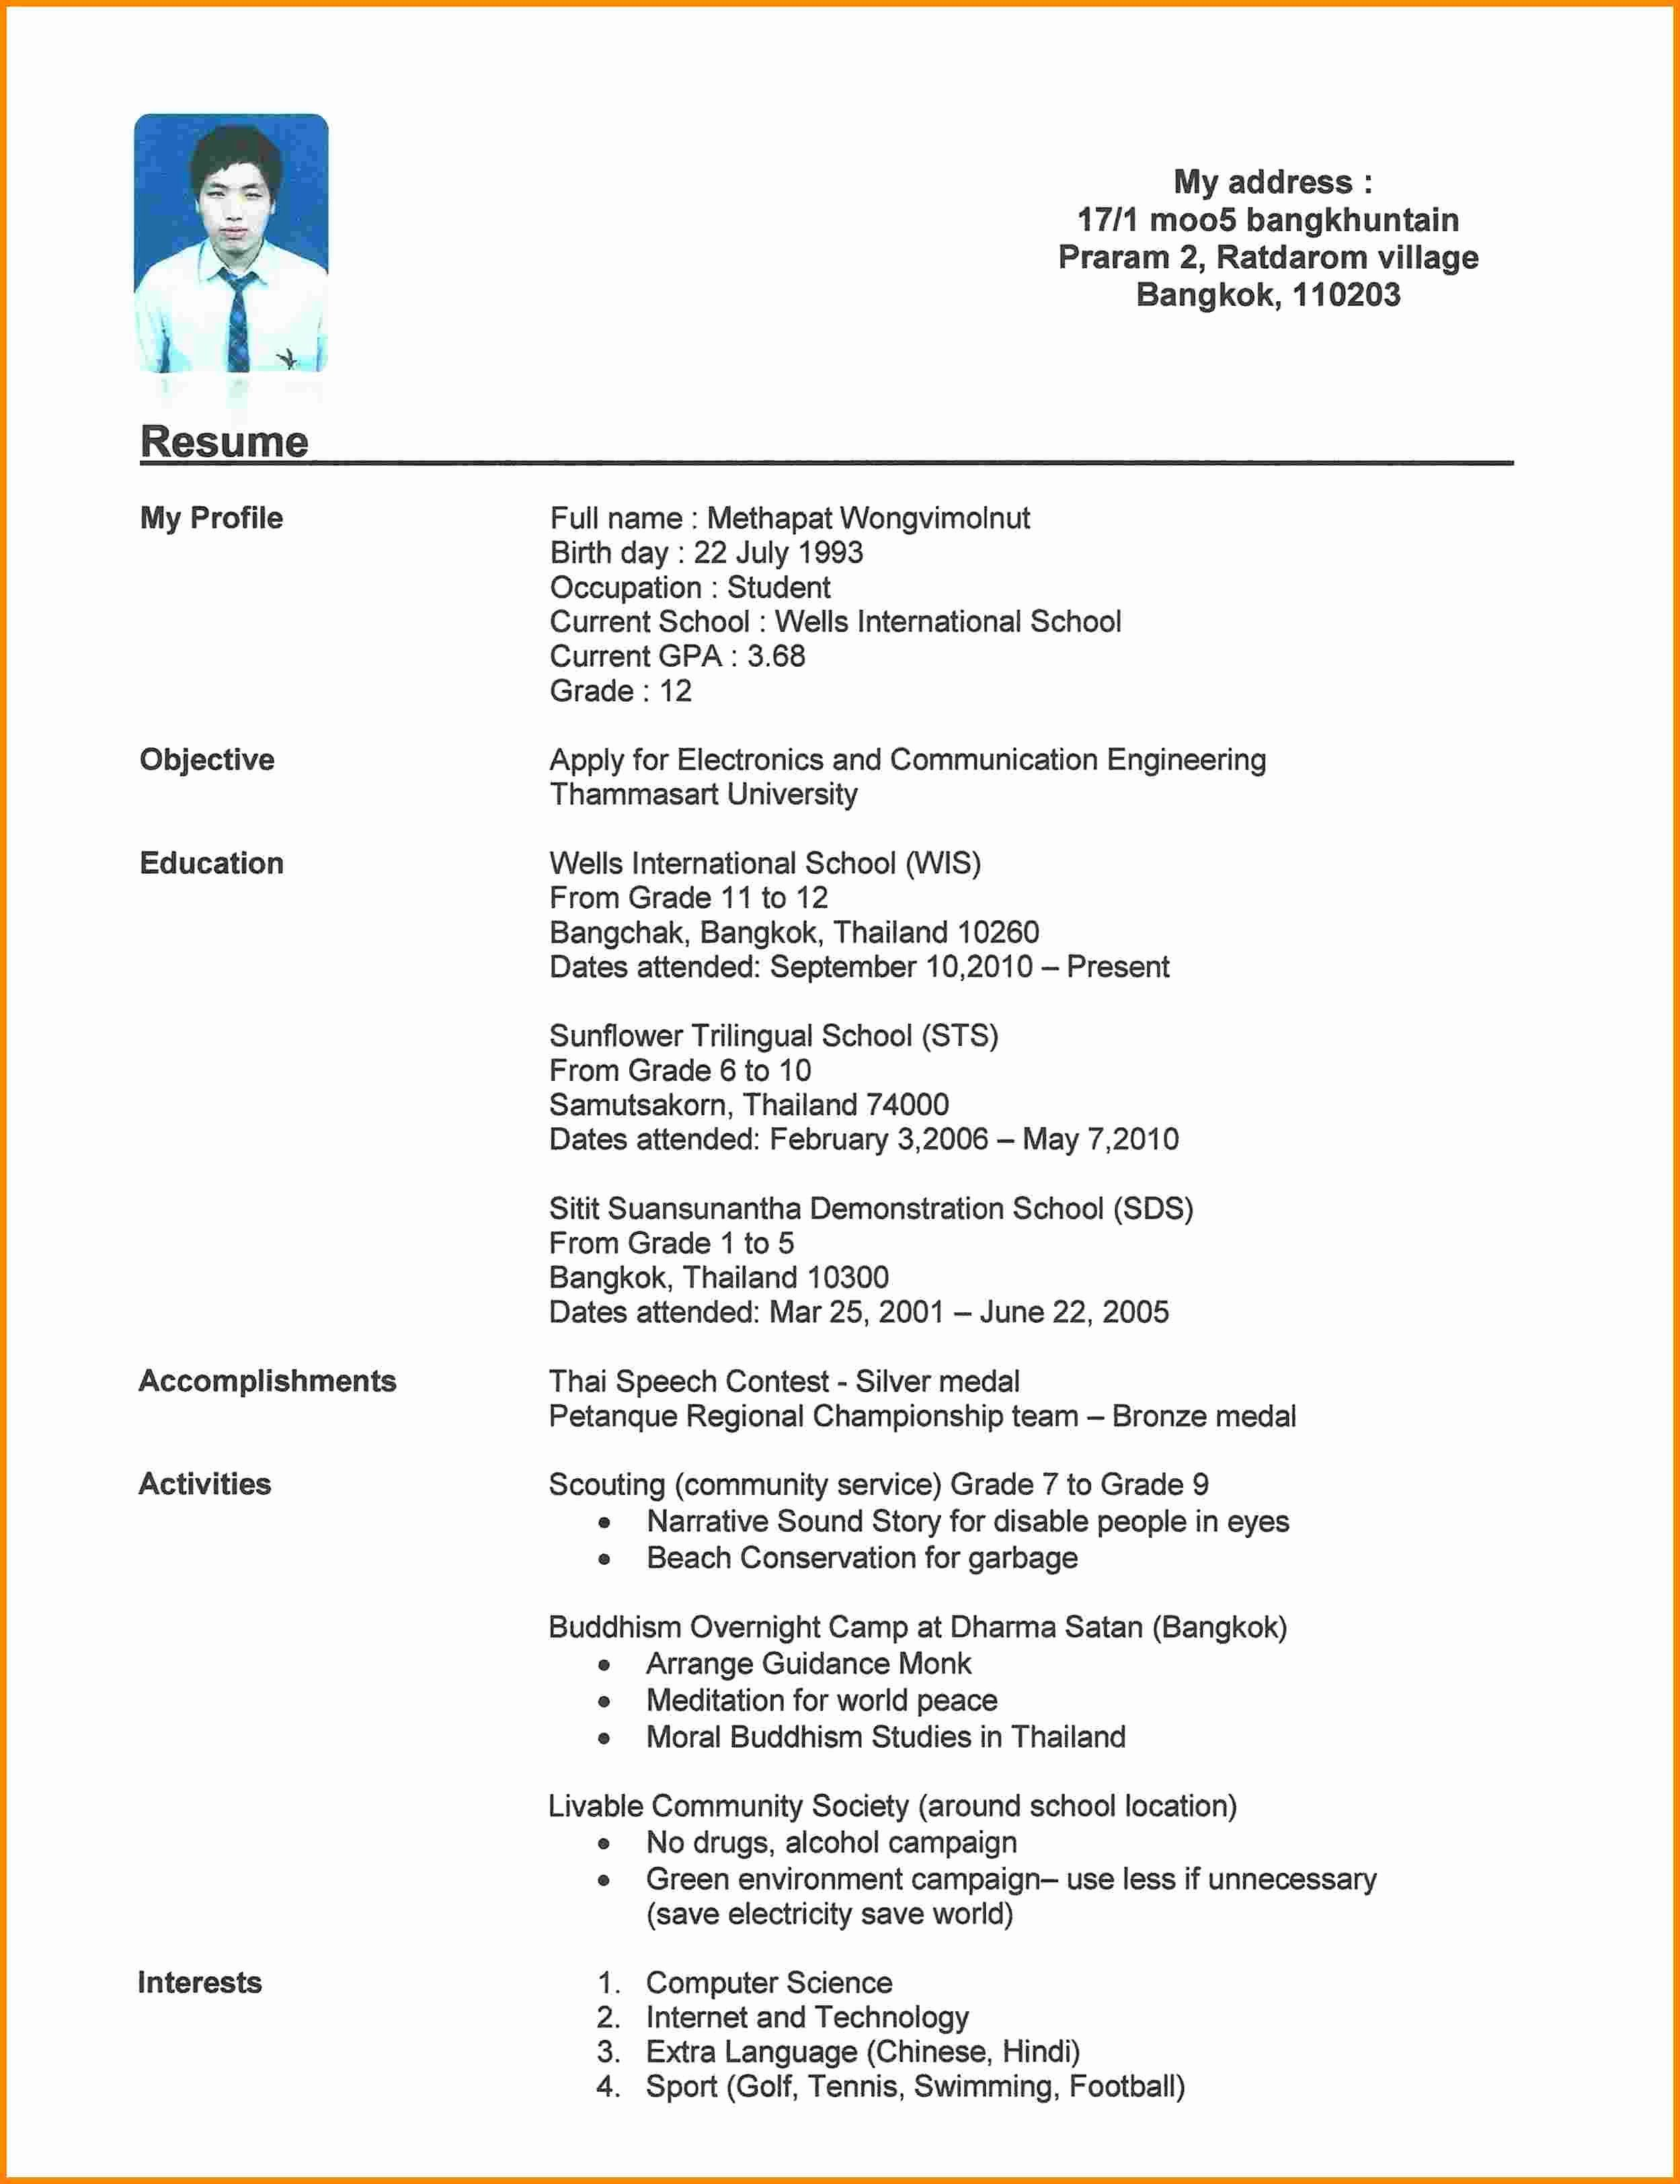 Image Result For Rugby Cv Template College Football Coaches Football Coach Soccer Coaching